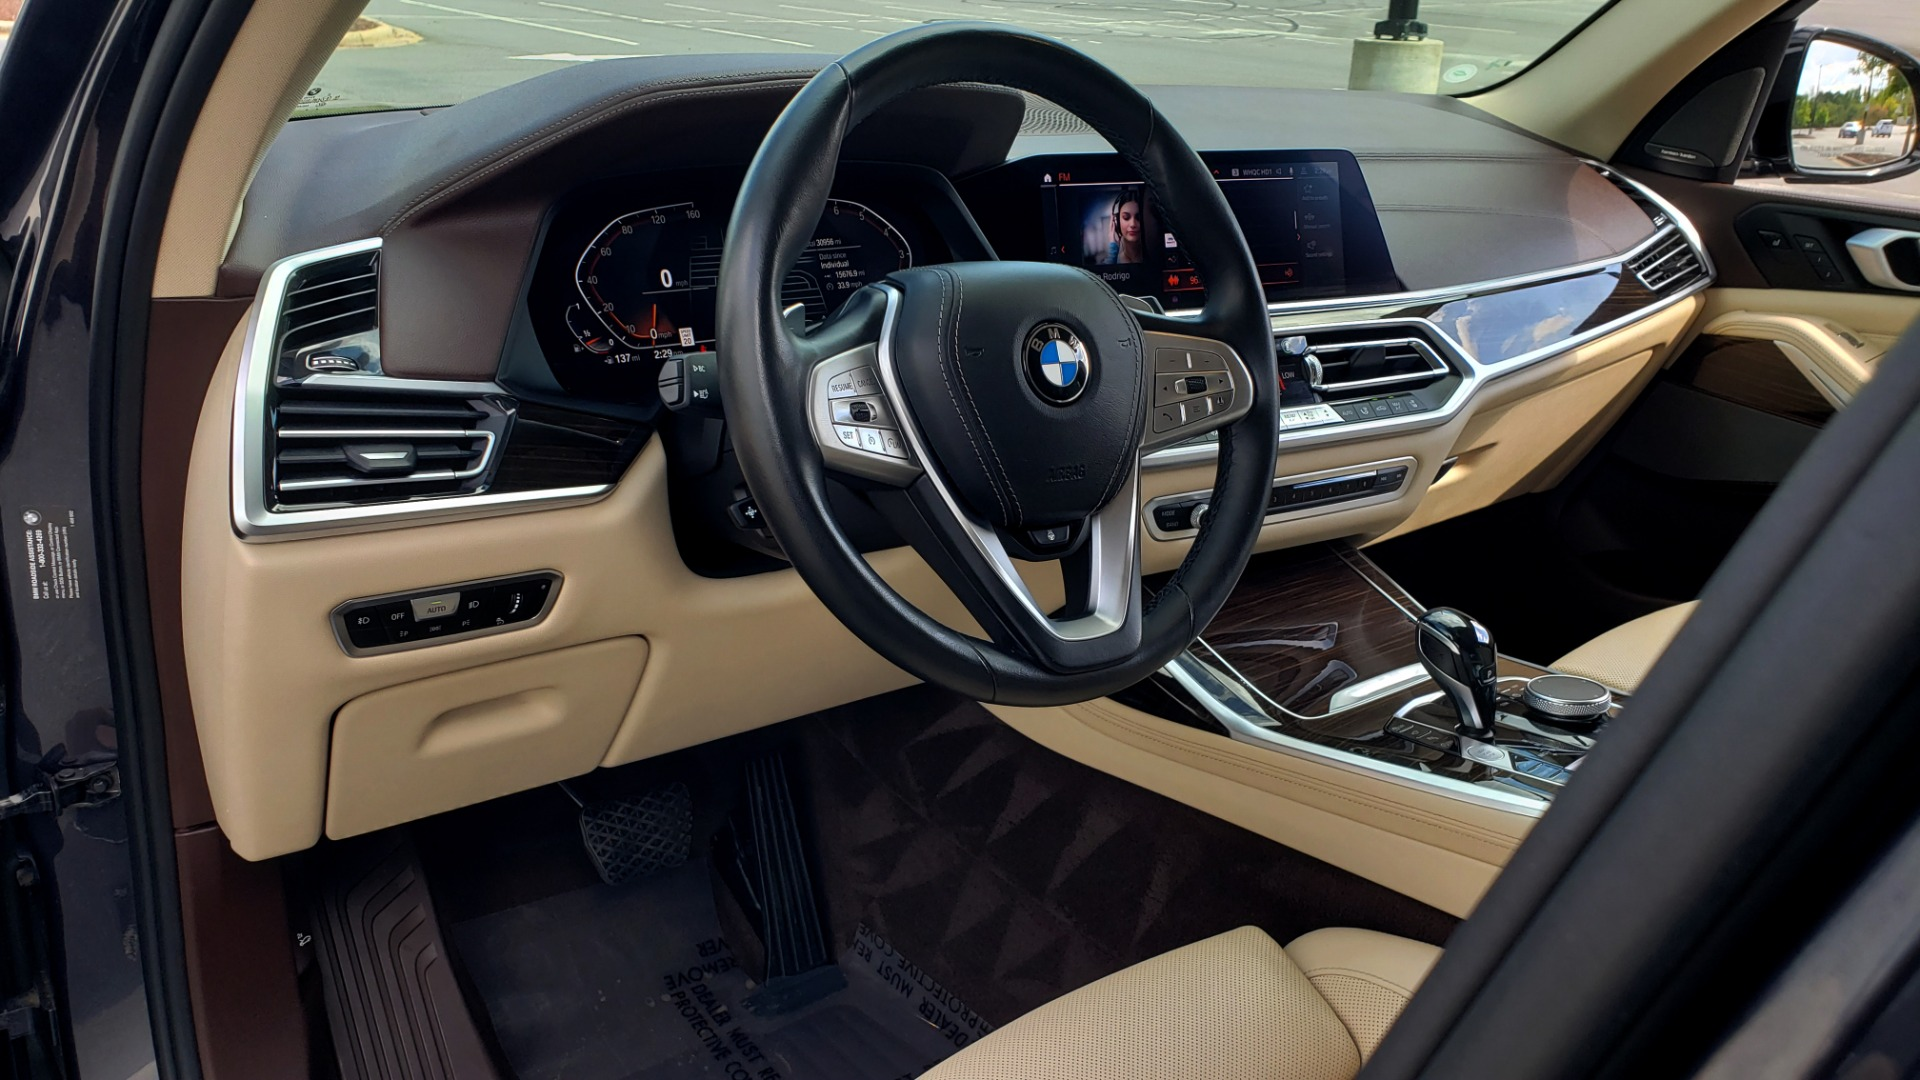 Used 2019 BMW X7 XDRIVE40I PREMIUM / LUXURY / COLD WEATHER / PARK ASST / PANORAMIC SKY / TOW for sale $75,999 at Formula Imports in Charlotte NC 28227 43